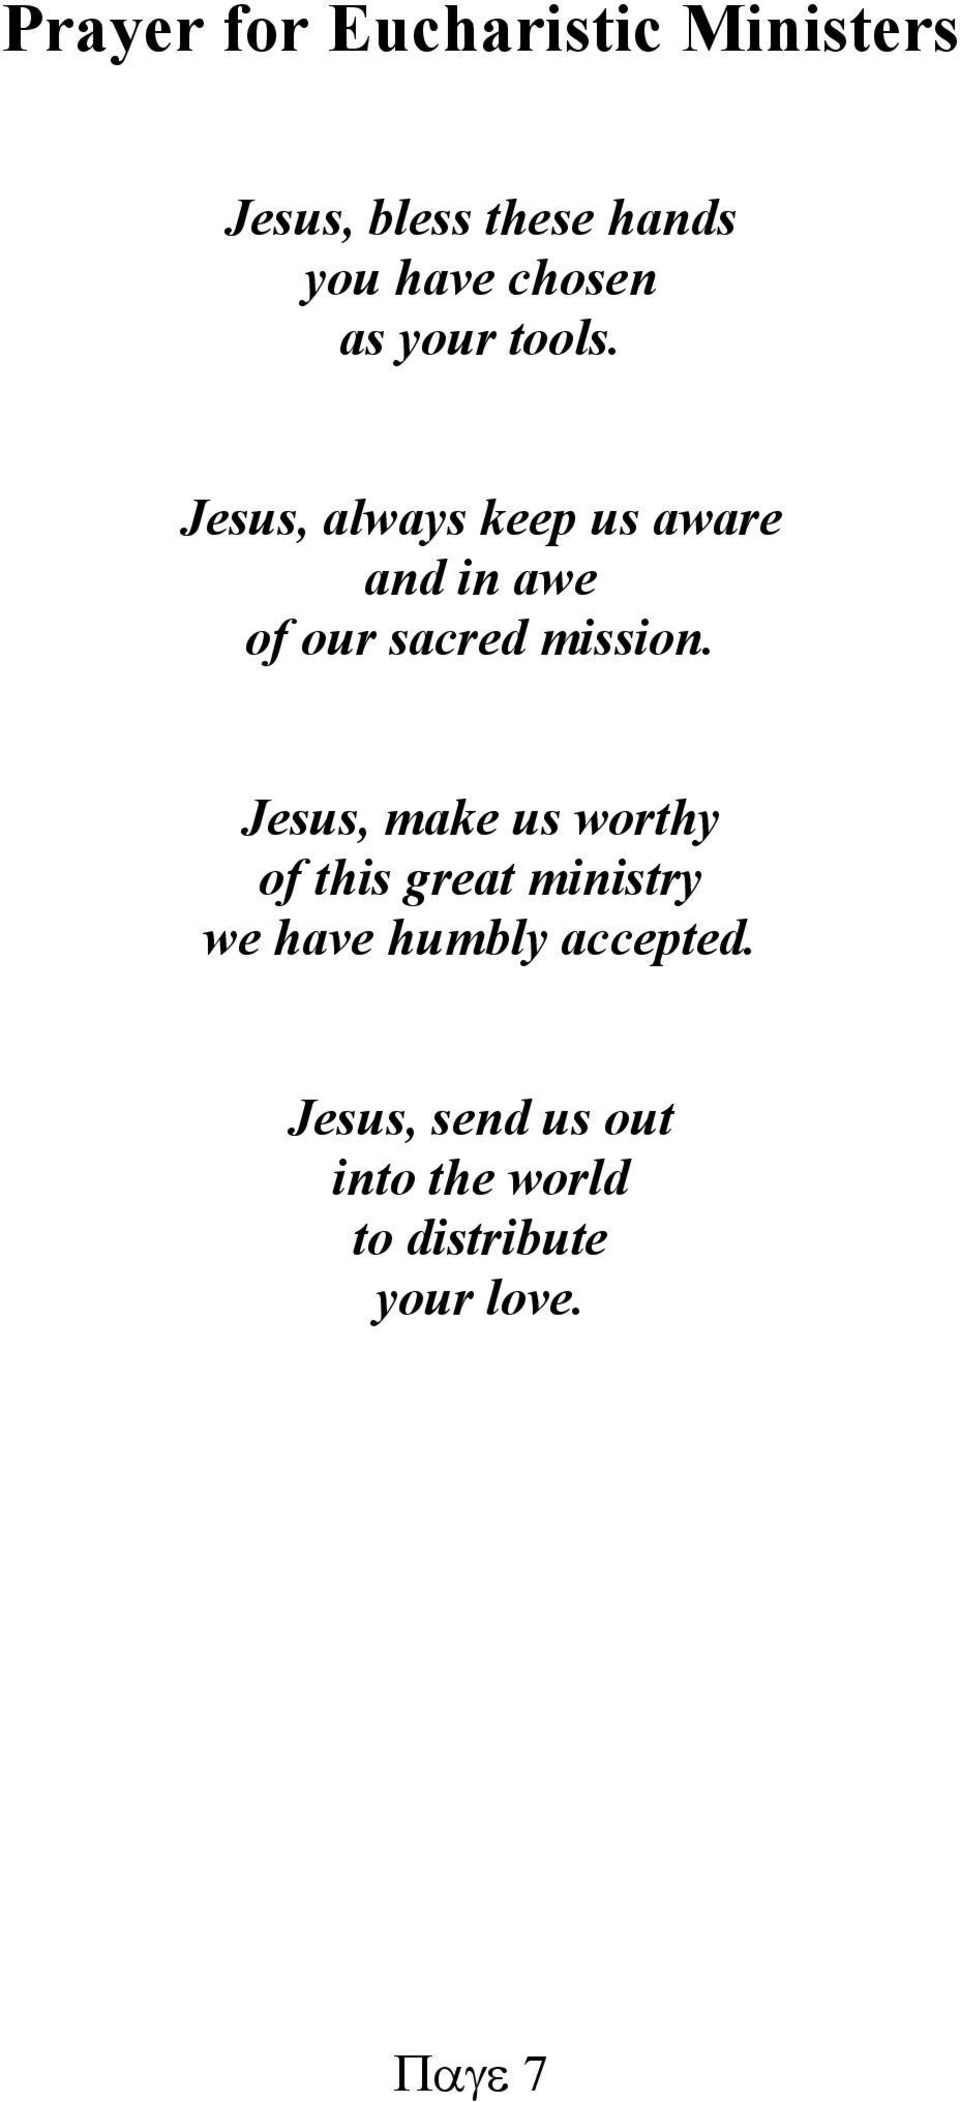 Jesus, always keep us aware and in awe of our sacred mission.